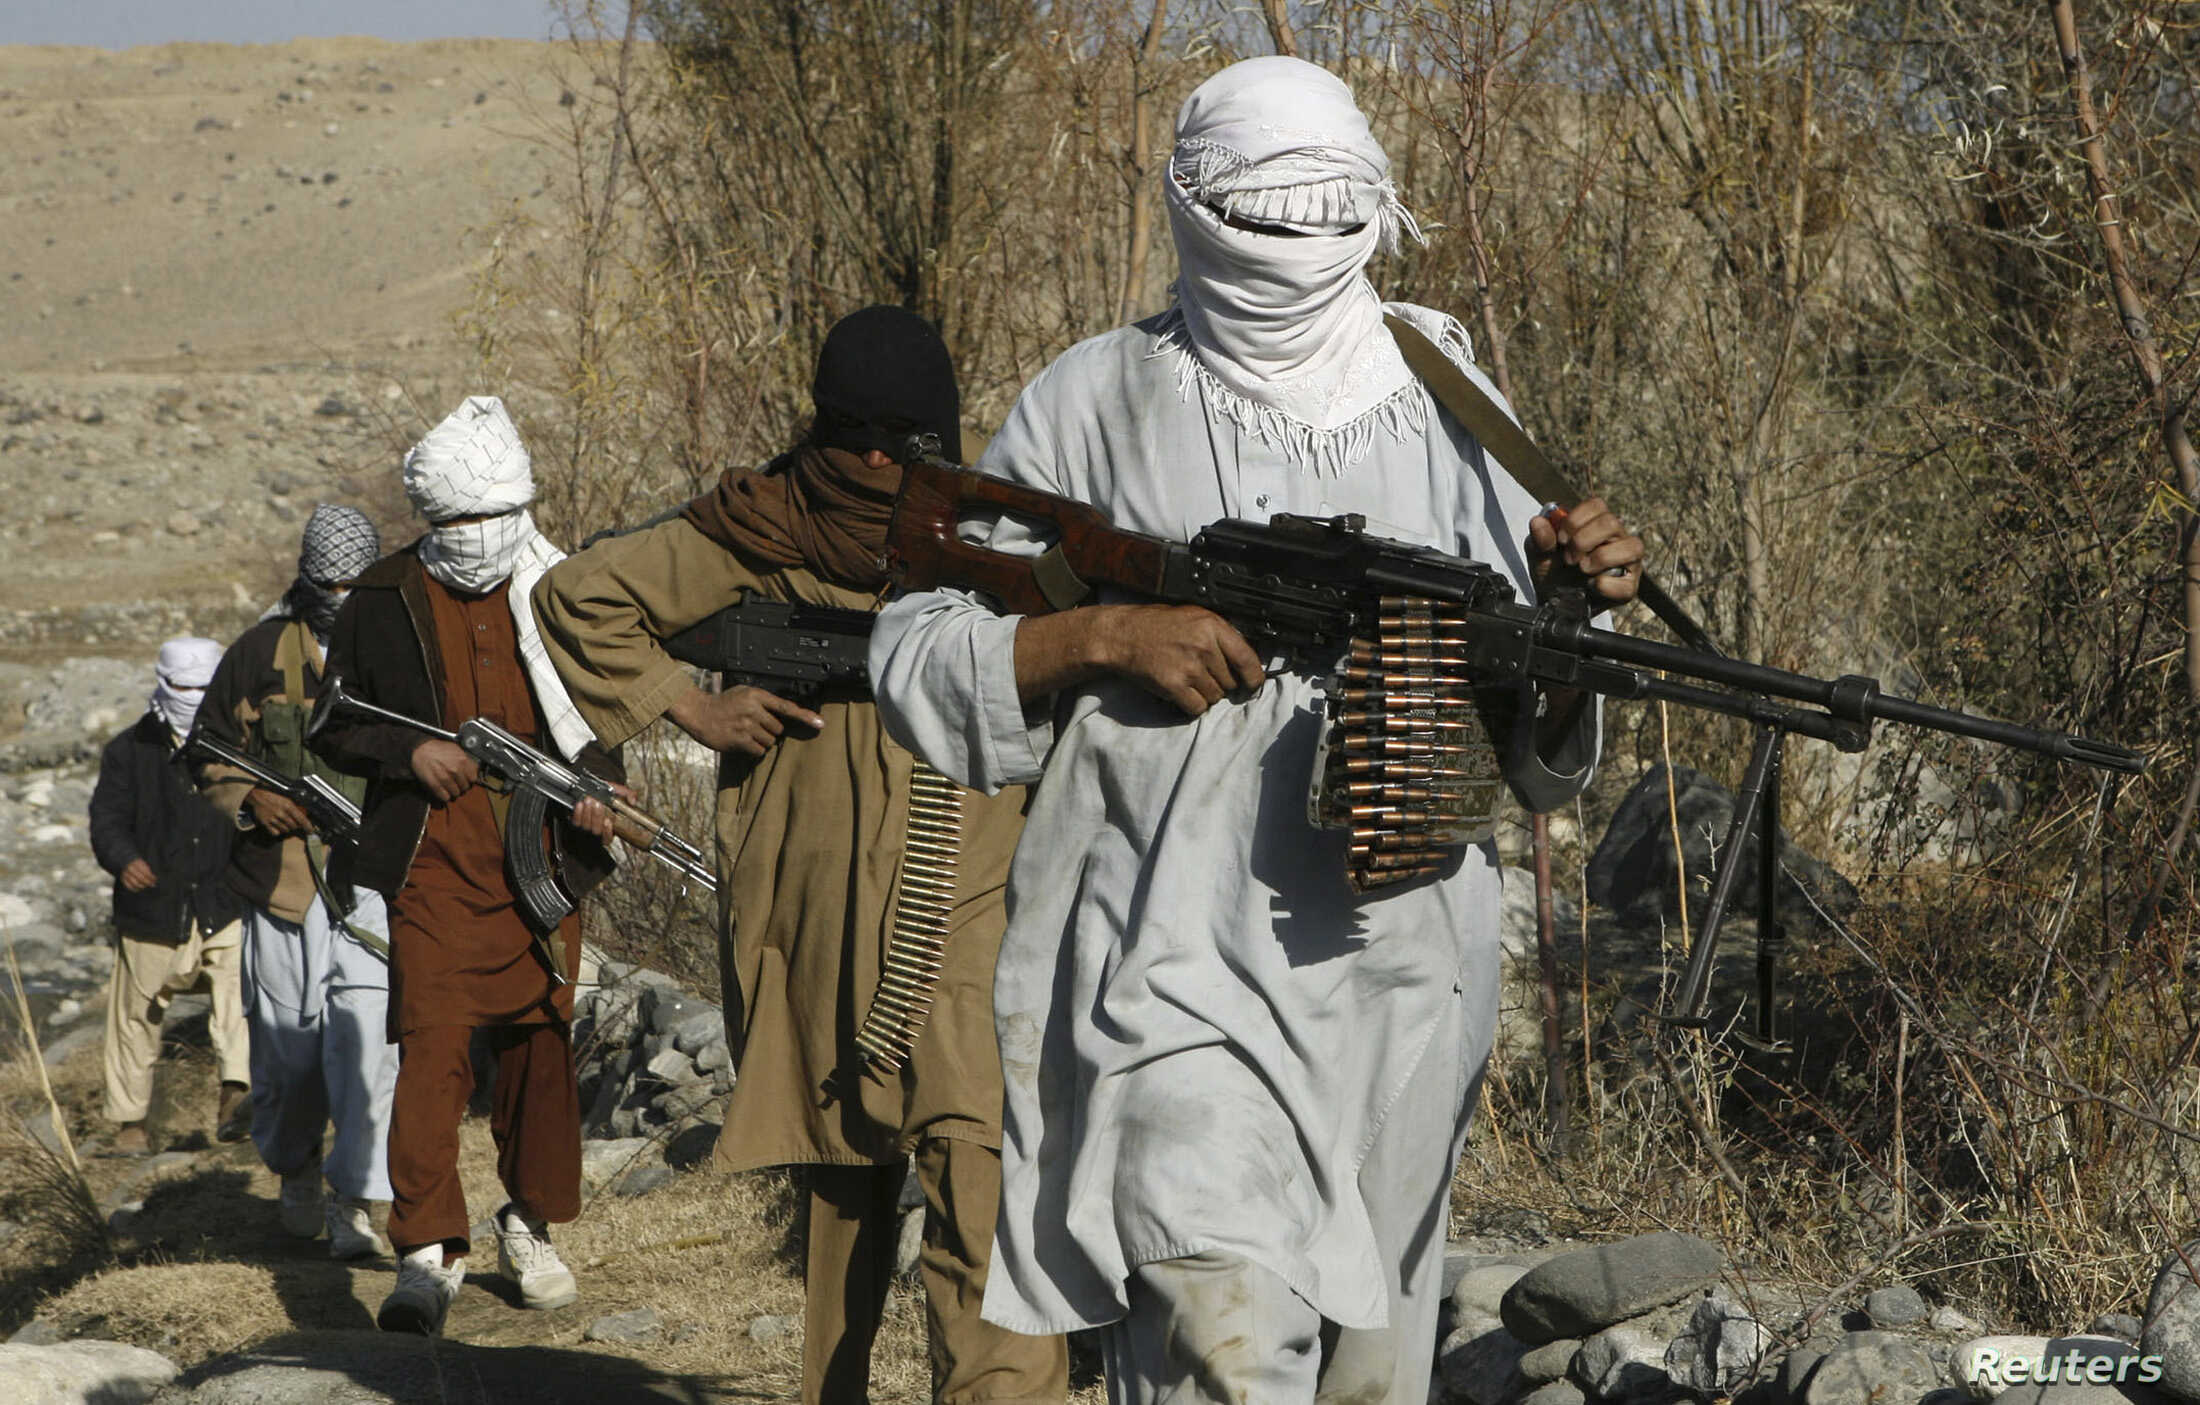 Taliban opens up on ISIS terrorists in Afghanistan